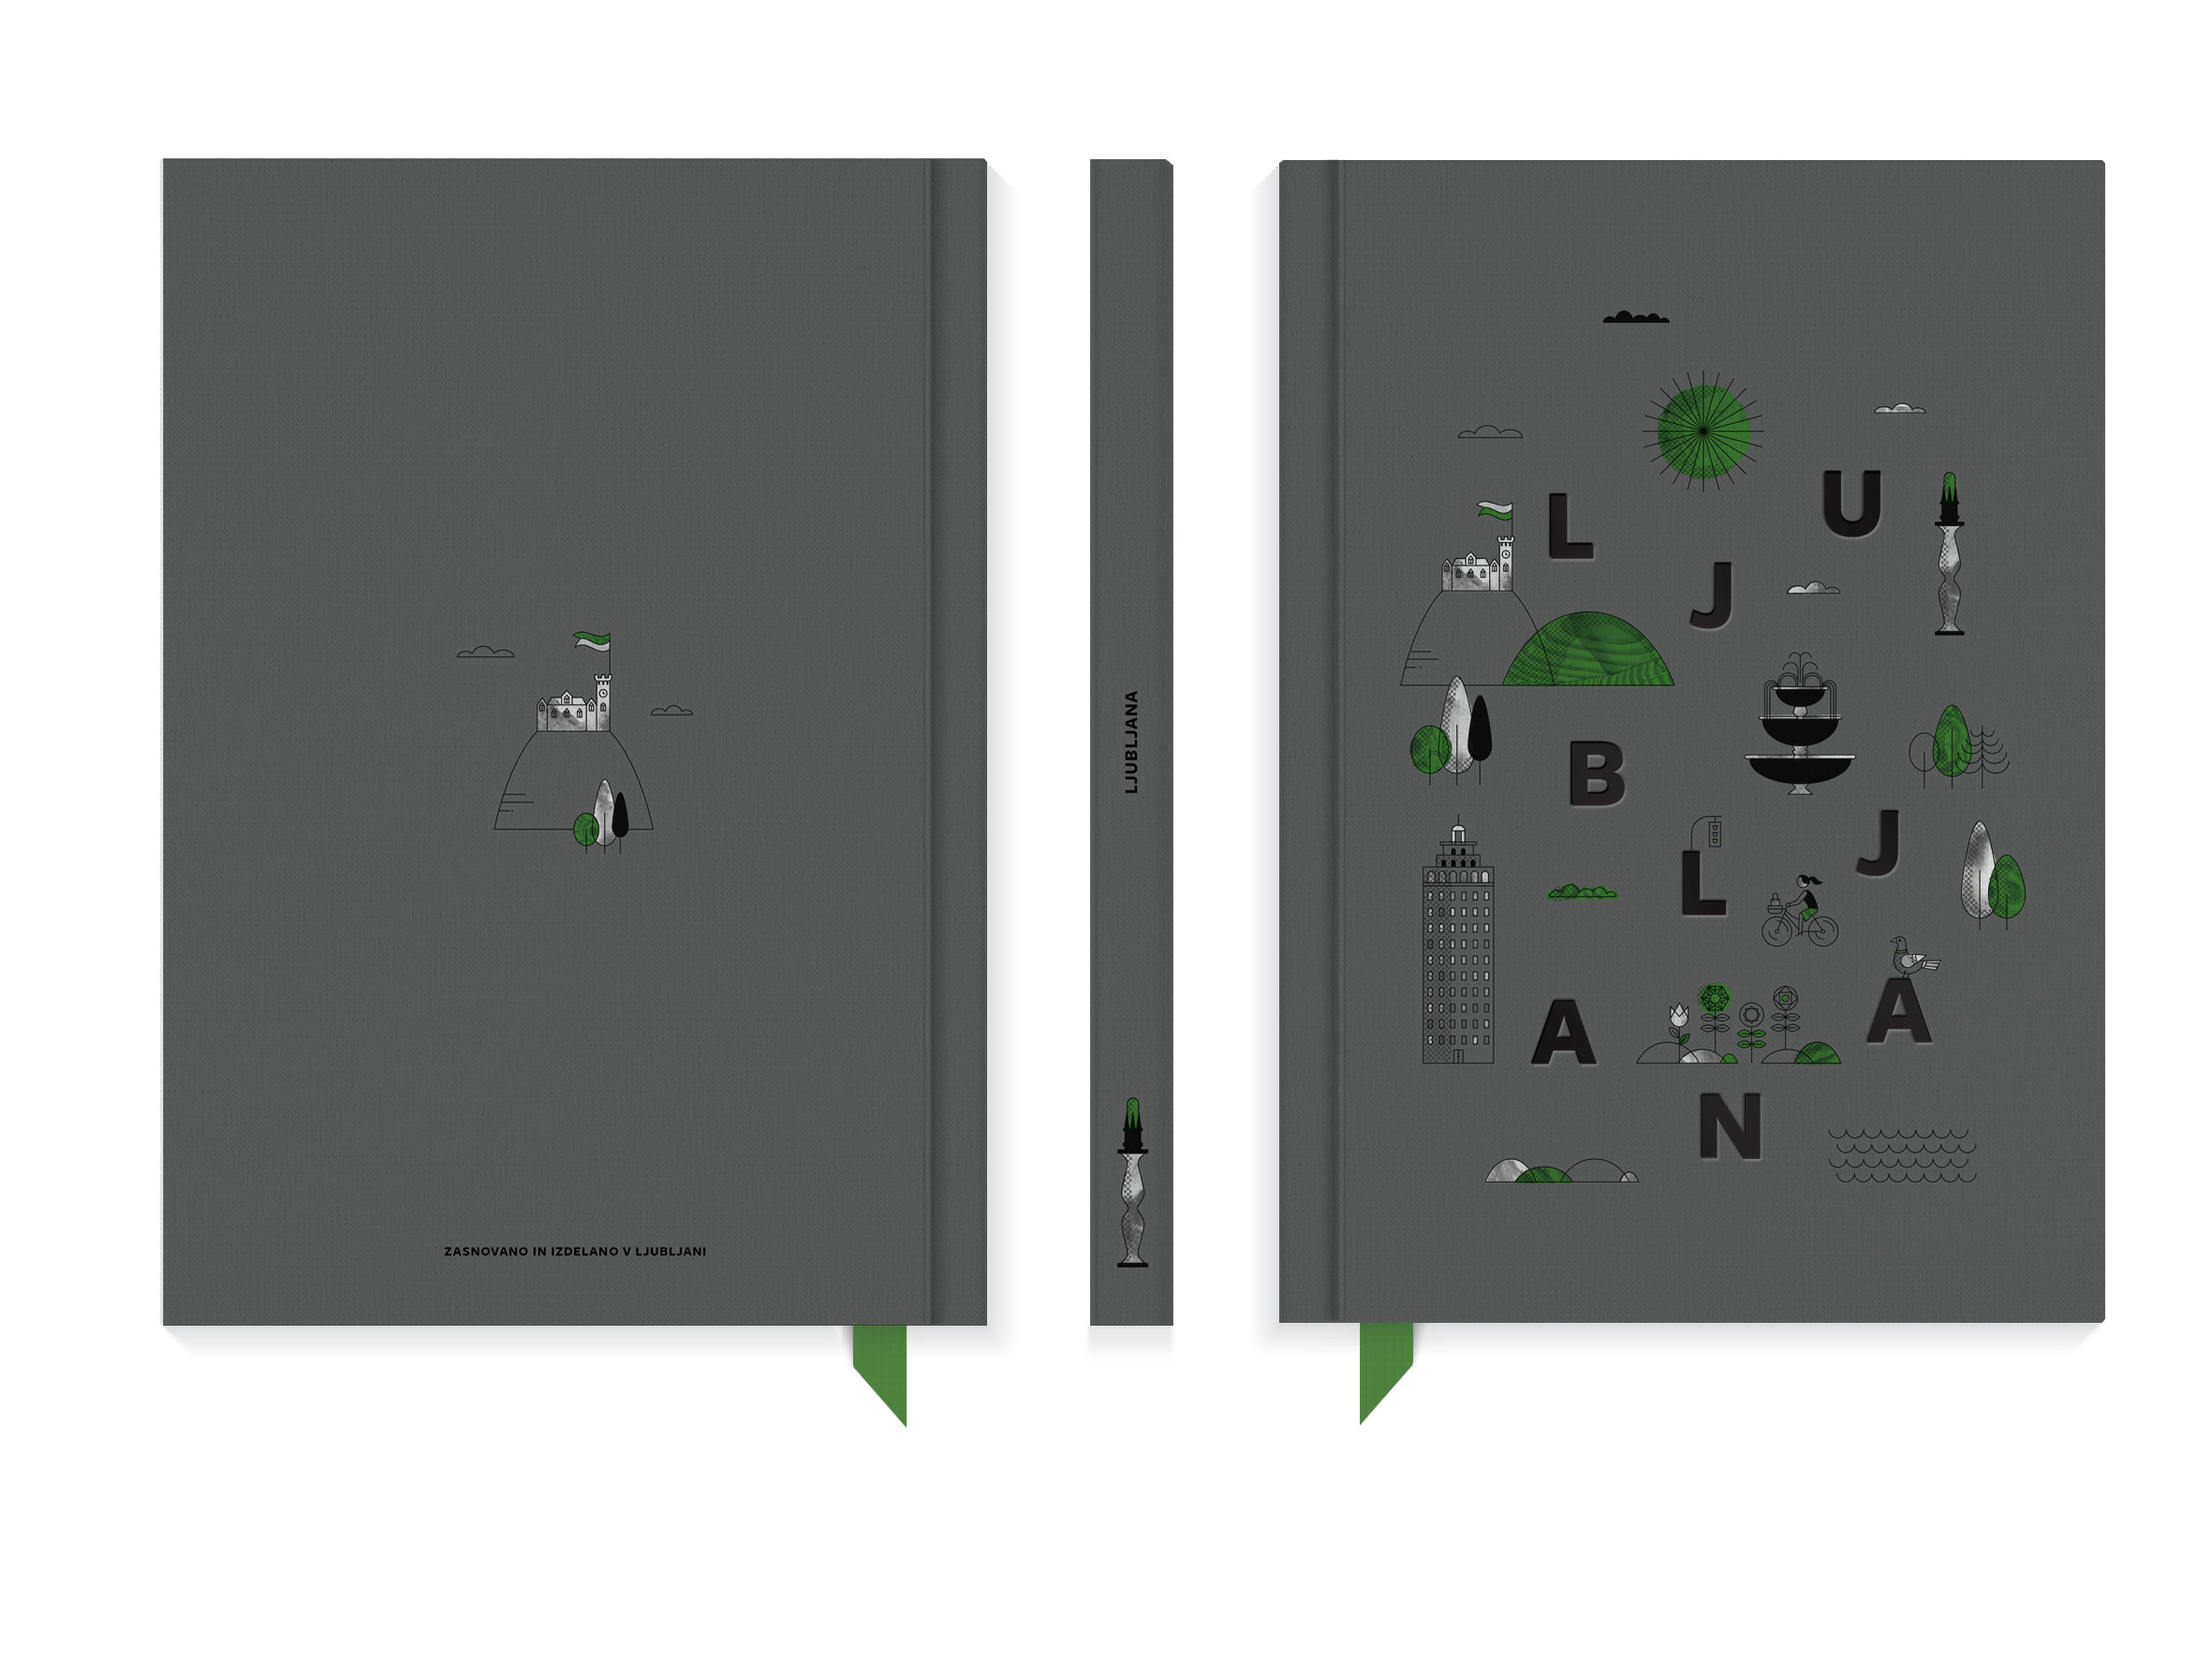 Planner for City of Ljubljana